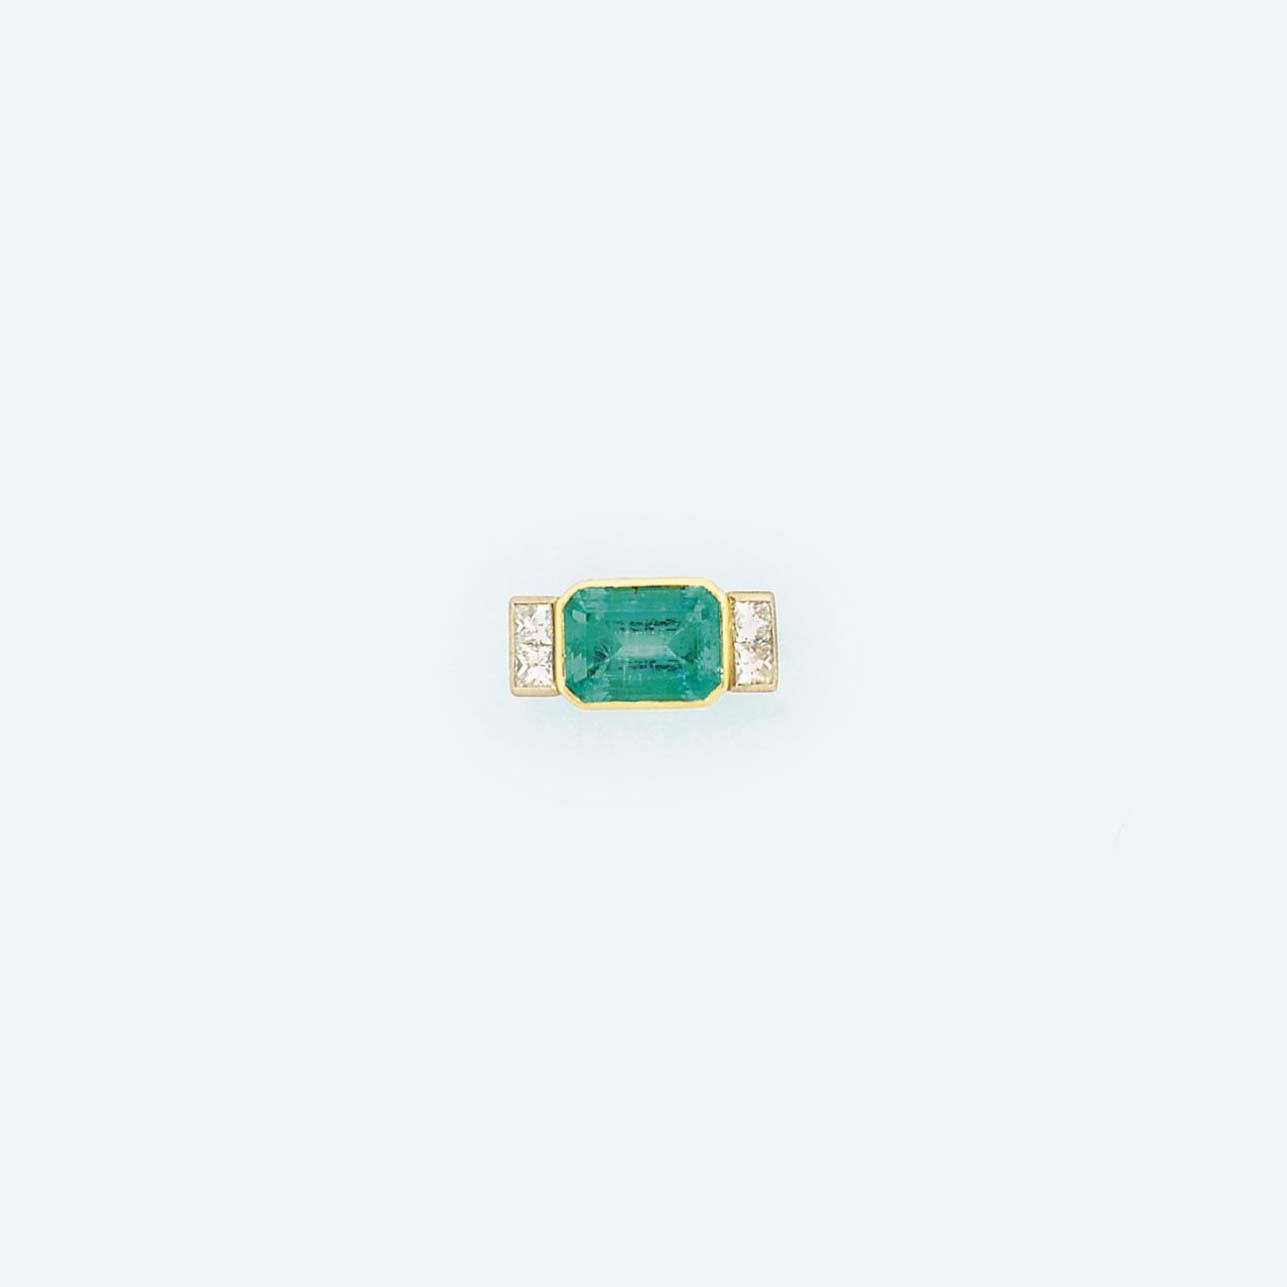 An 18ct gold, emerald and diam